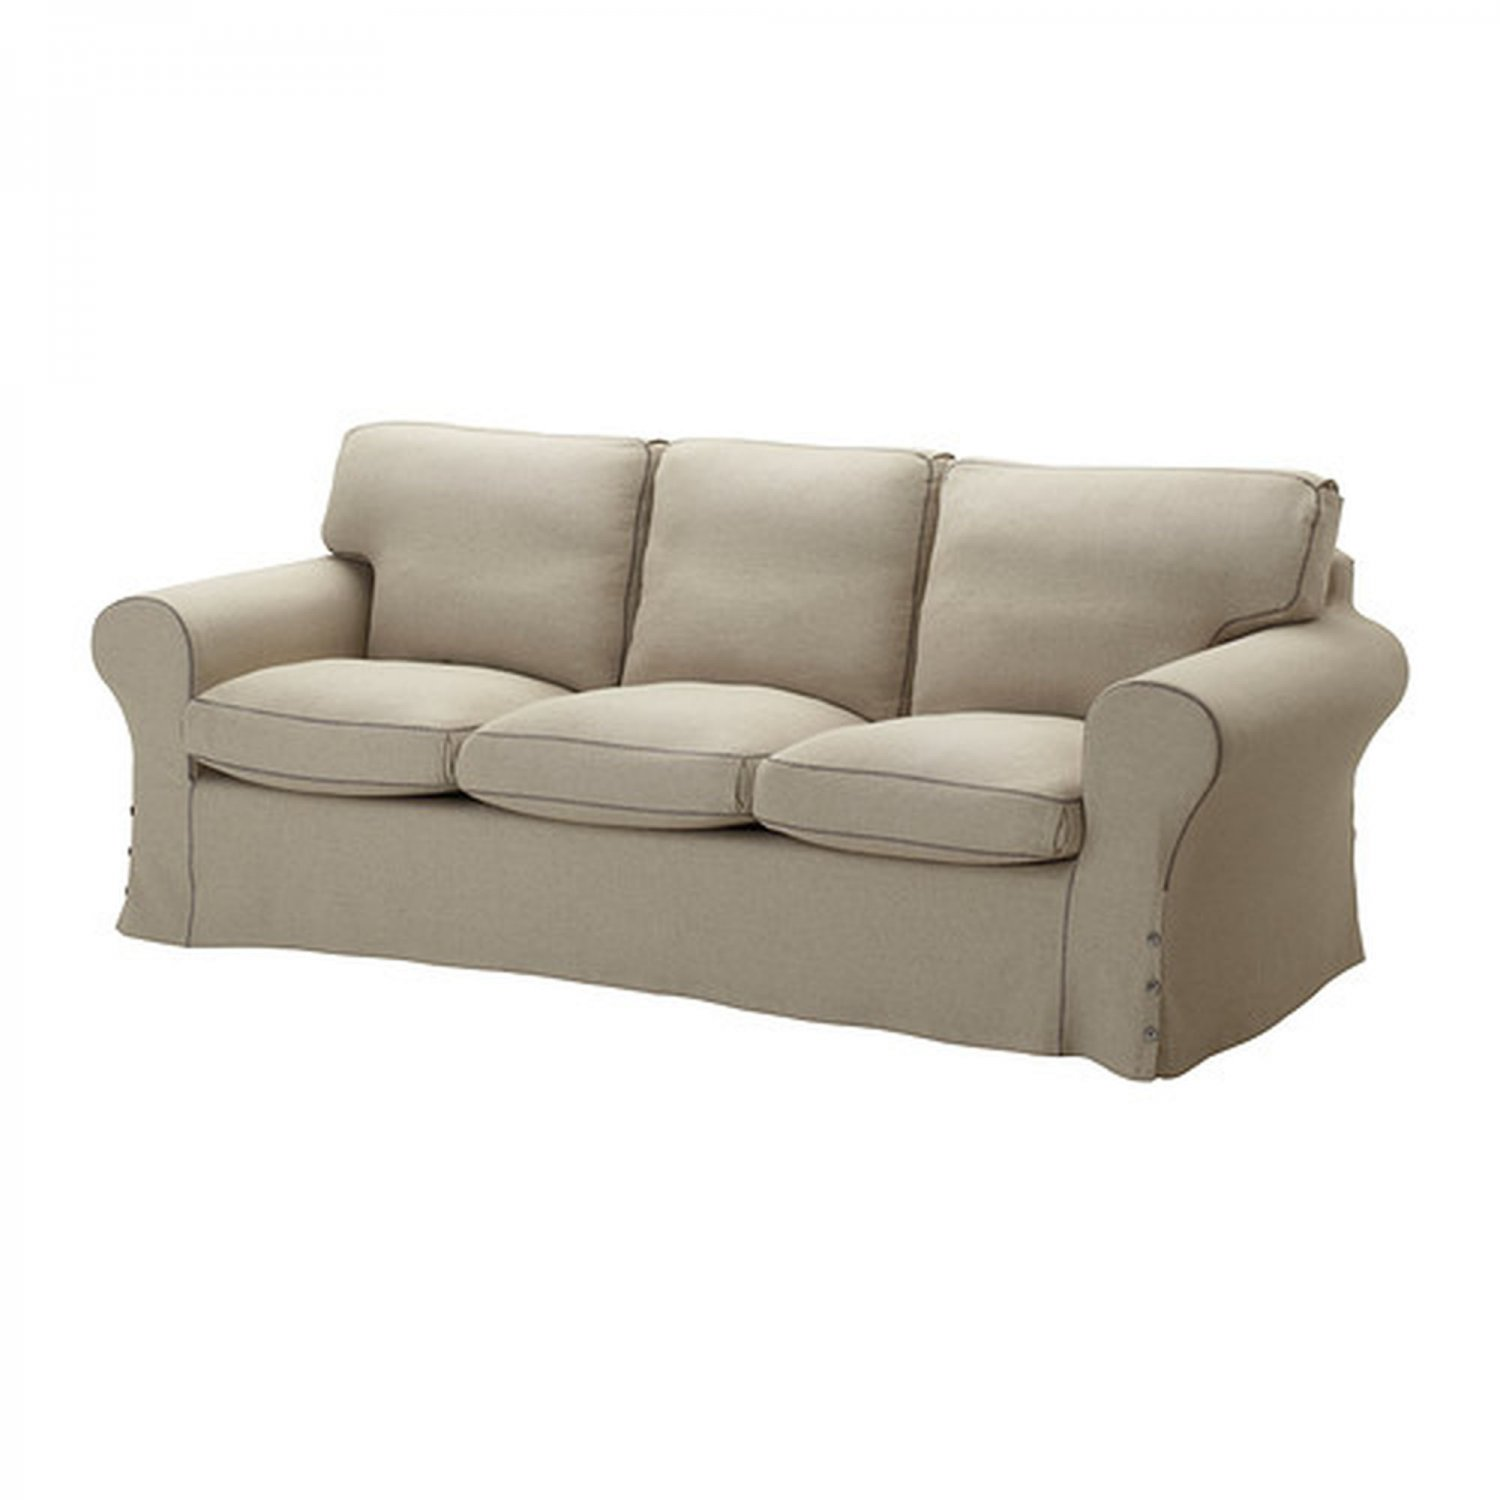 linen bench cushion sofa fundas sofas y sillones el corte ingles ikea ektorp 3 seat slipcover cover risane natural